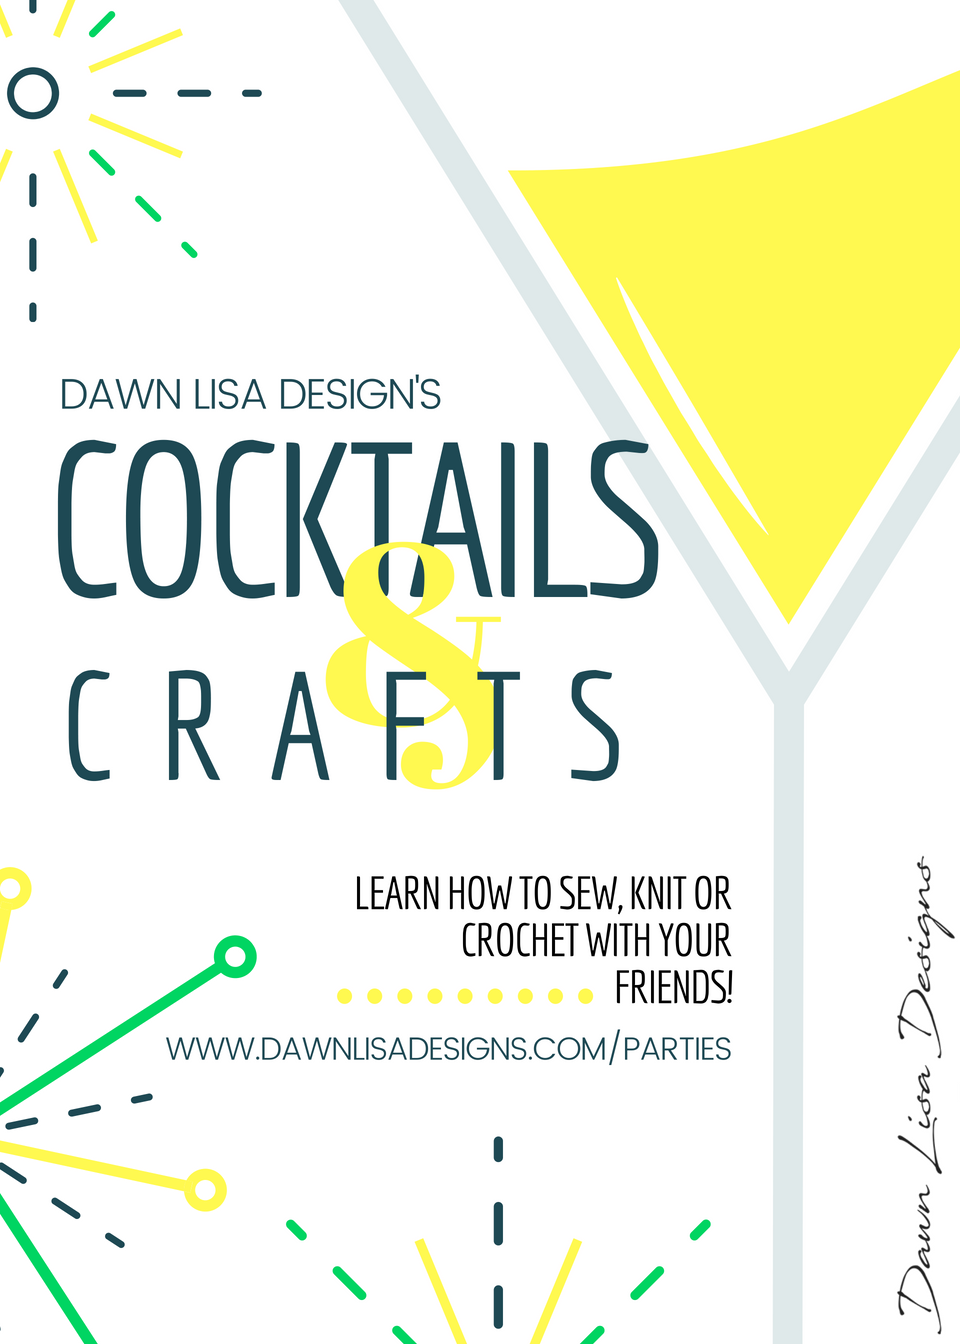 COCKTAILS AND CRAFTS MAIN FLYER.png